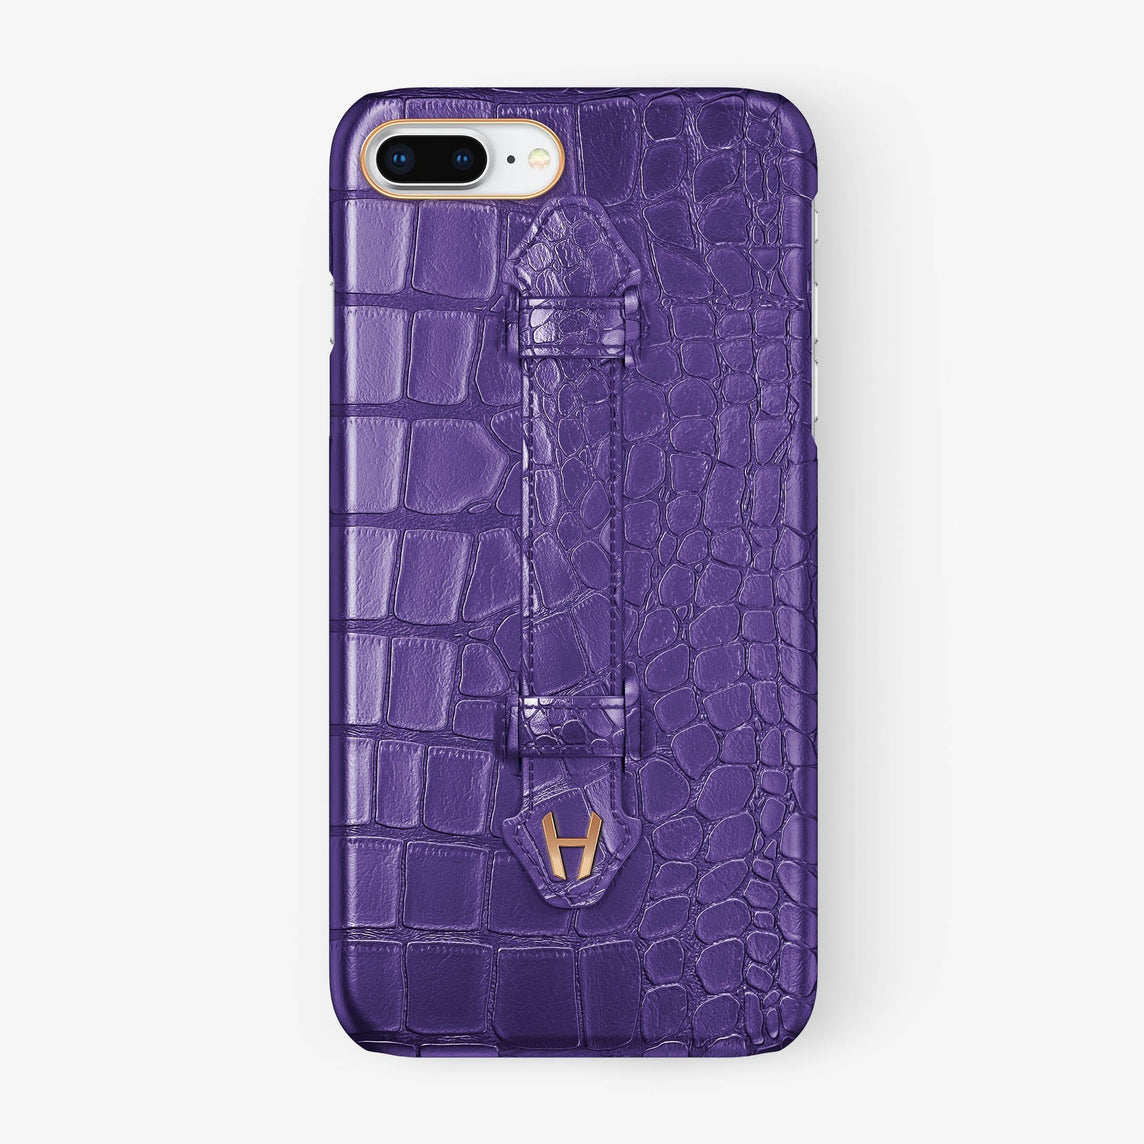 Purple Alligator iPhone Finger Case for iPhone 7/8 Plus finishing rose gold - Hadoro Luxury Cases